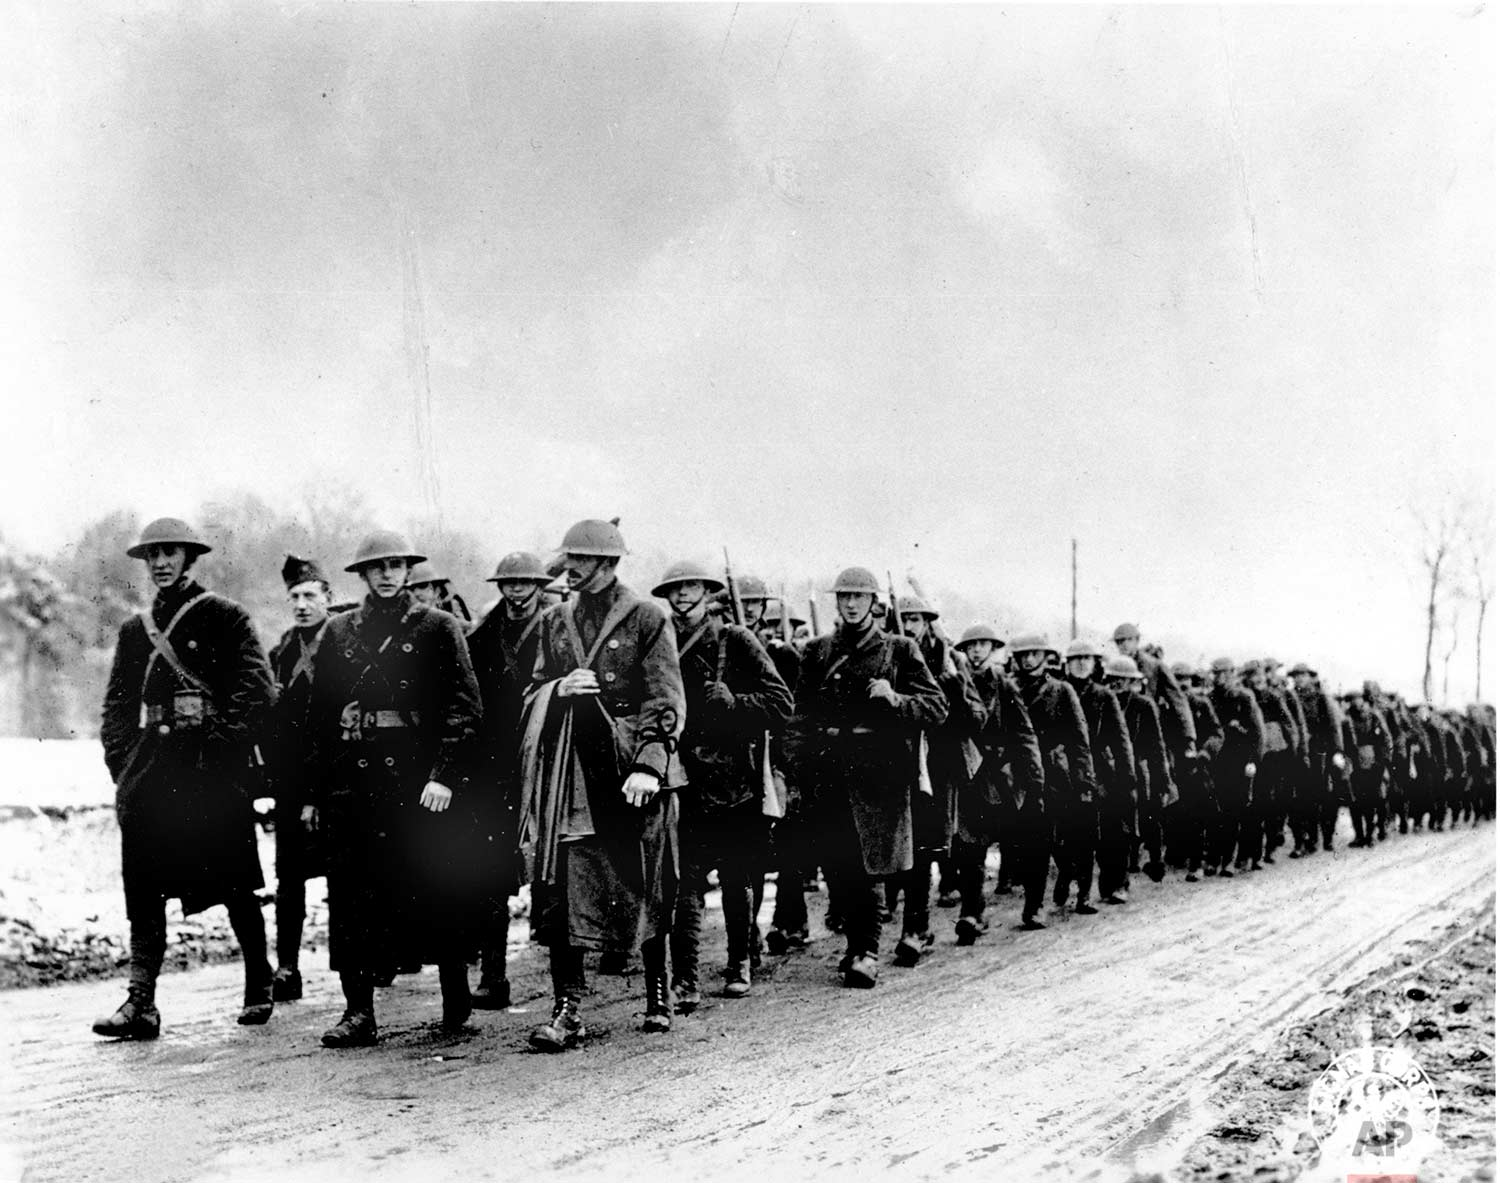 In this March 1918 photo, American soldiers of Company K, 165th Infantry of the Fighting 69th, Old Rainbow Division, march to the trenches at St. Clement, France during World War One. (AP Photo)